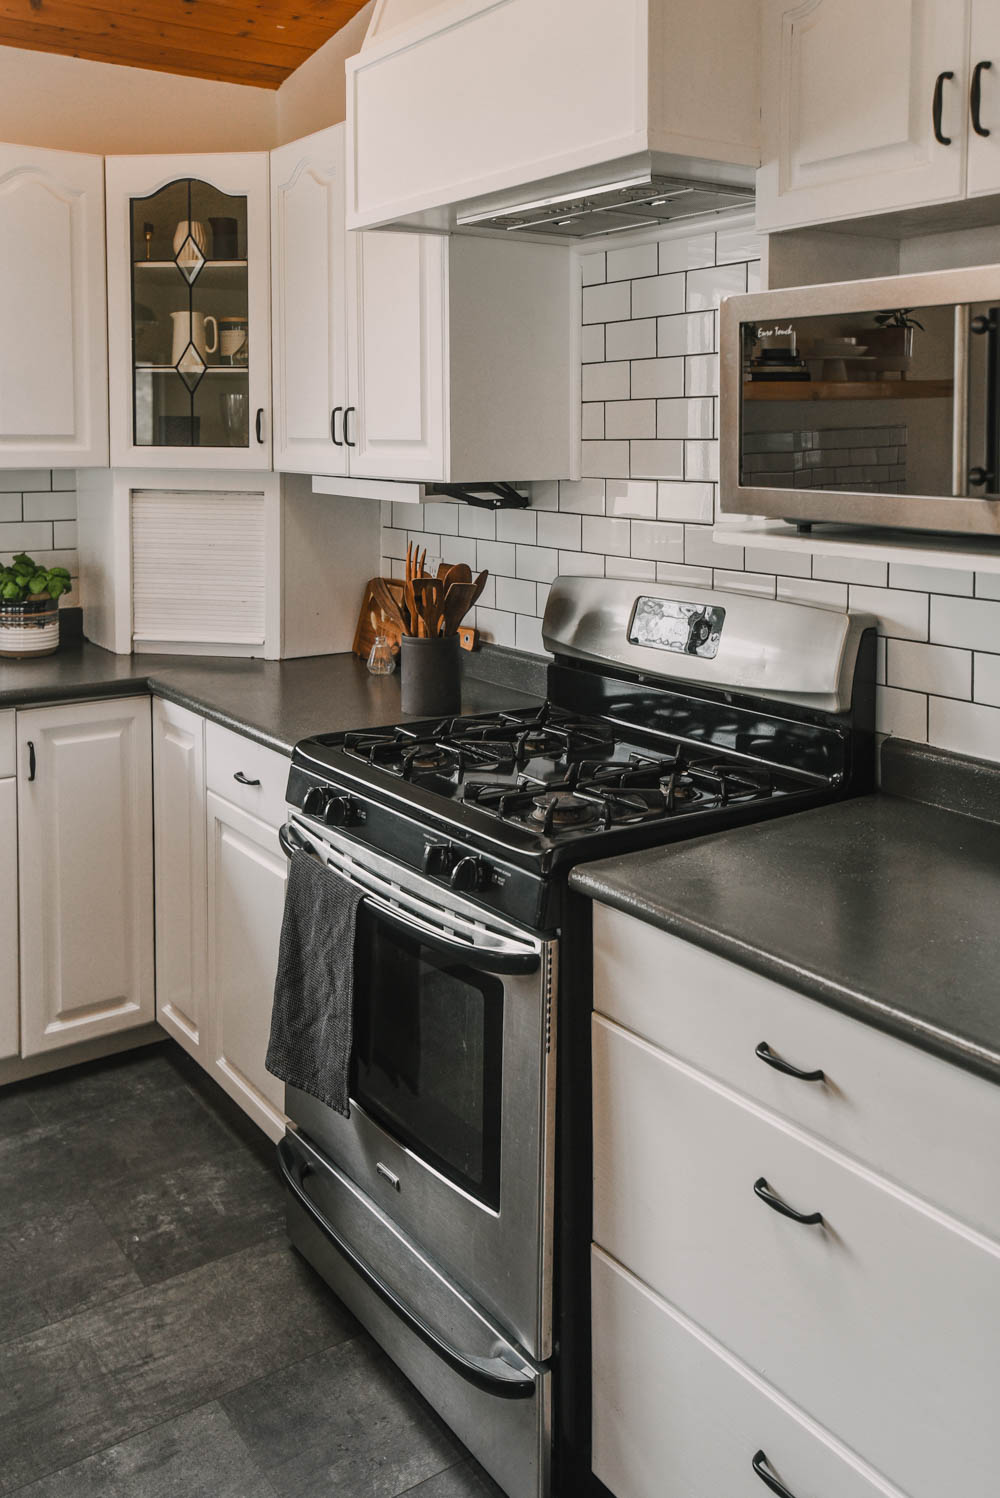 DIY Kitchen Refresh with paint and finishing